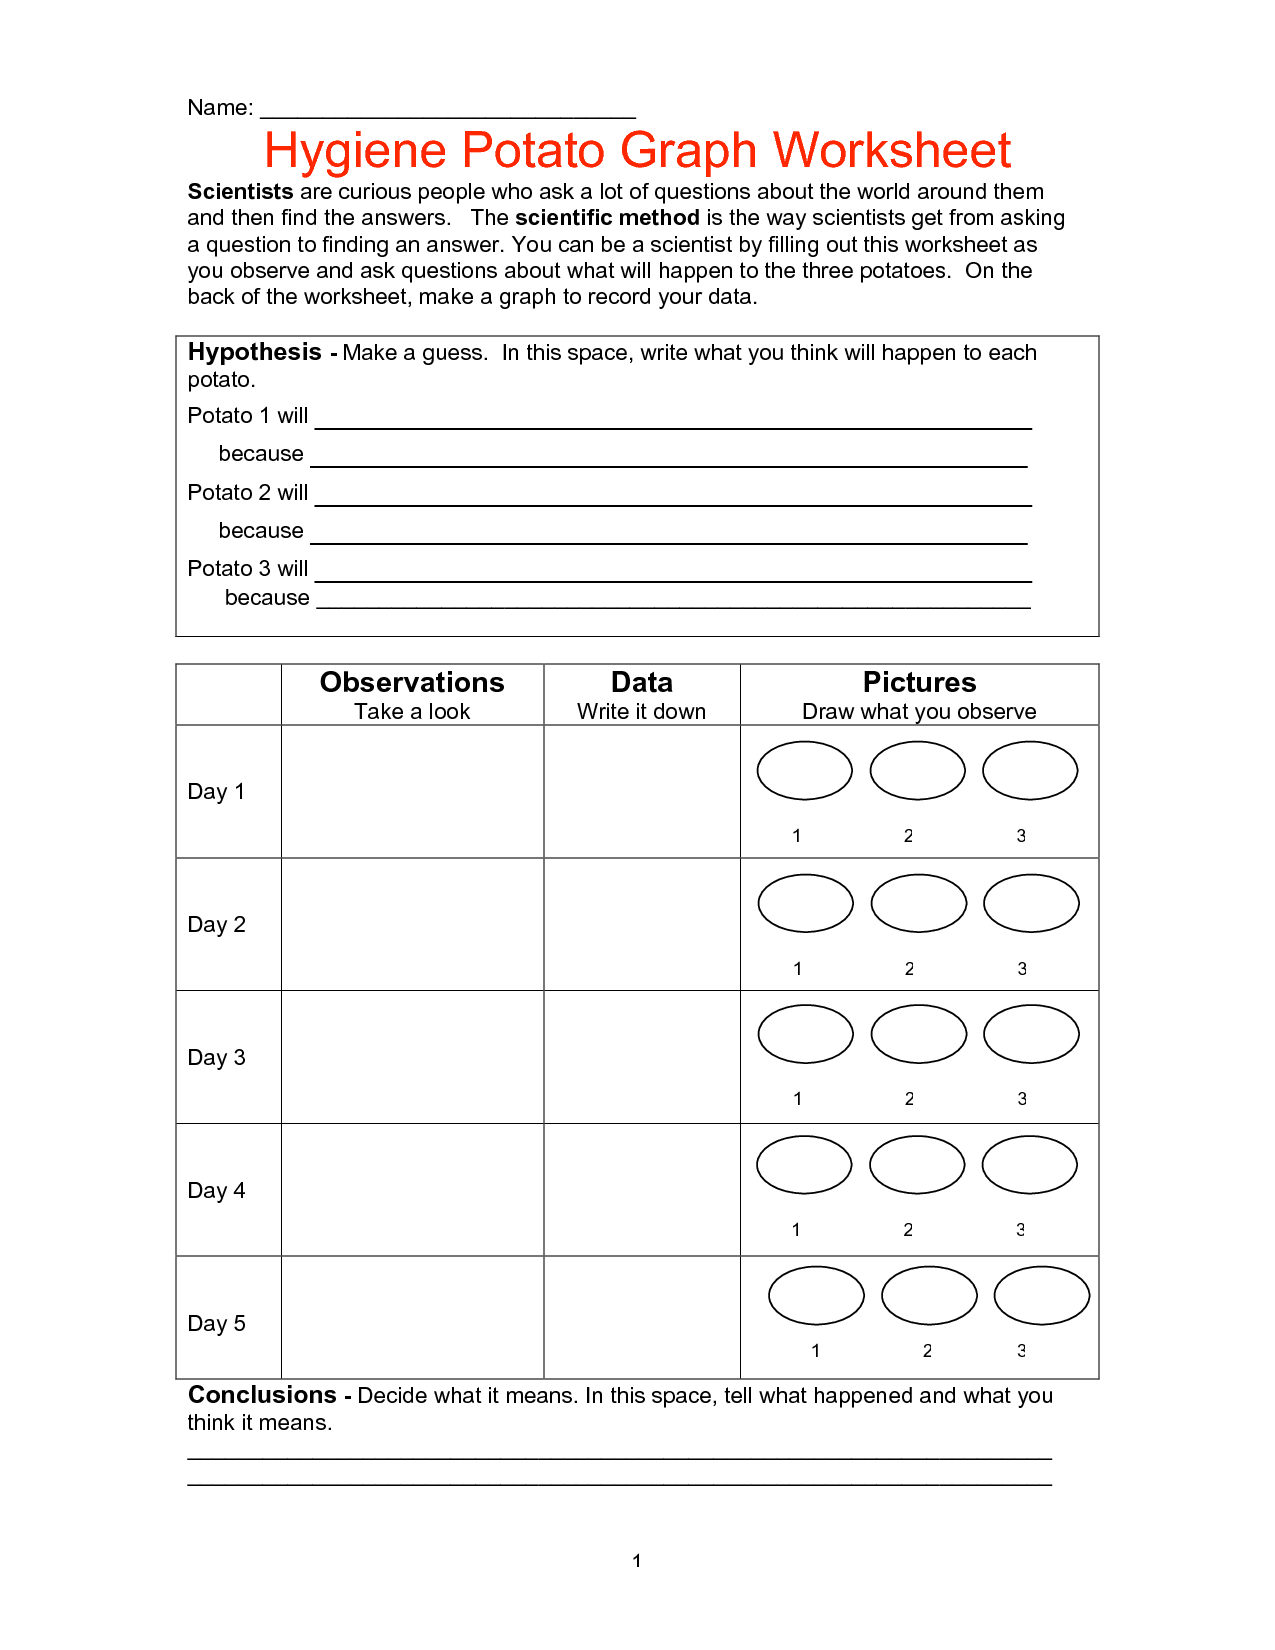 19 Best Images Of Personal Hygiene Worksheets For Adults